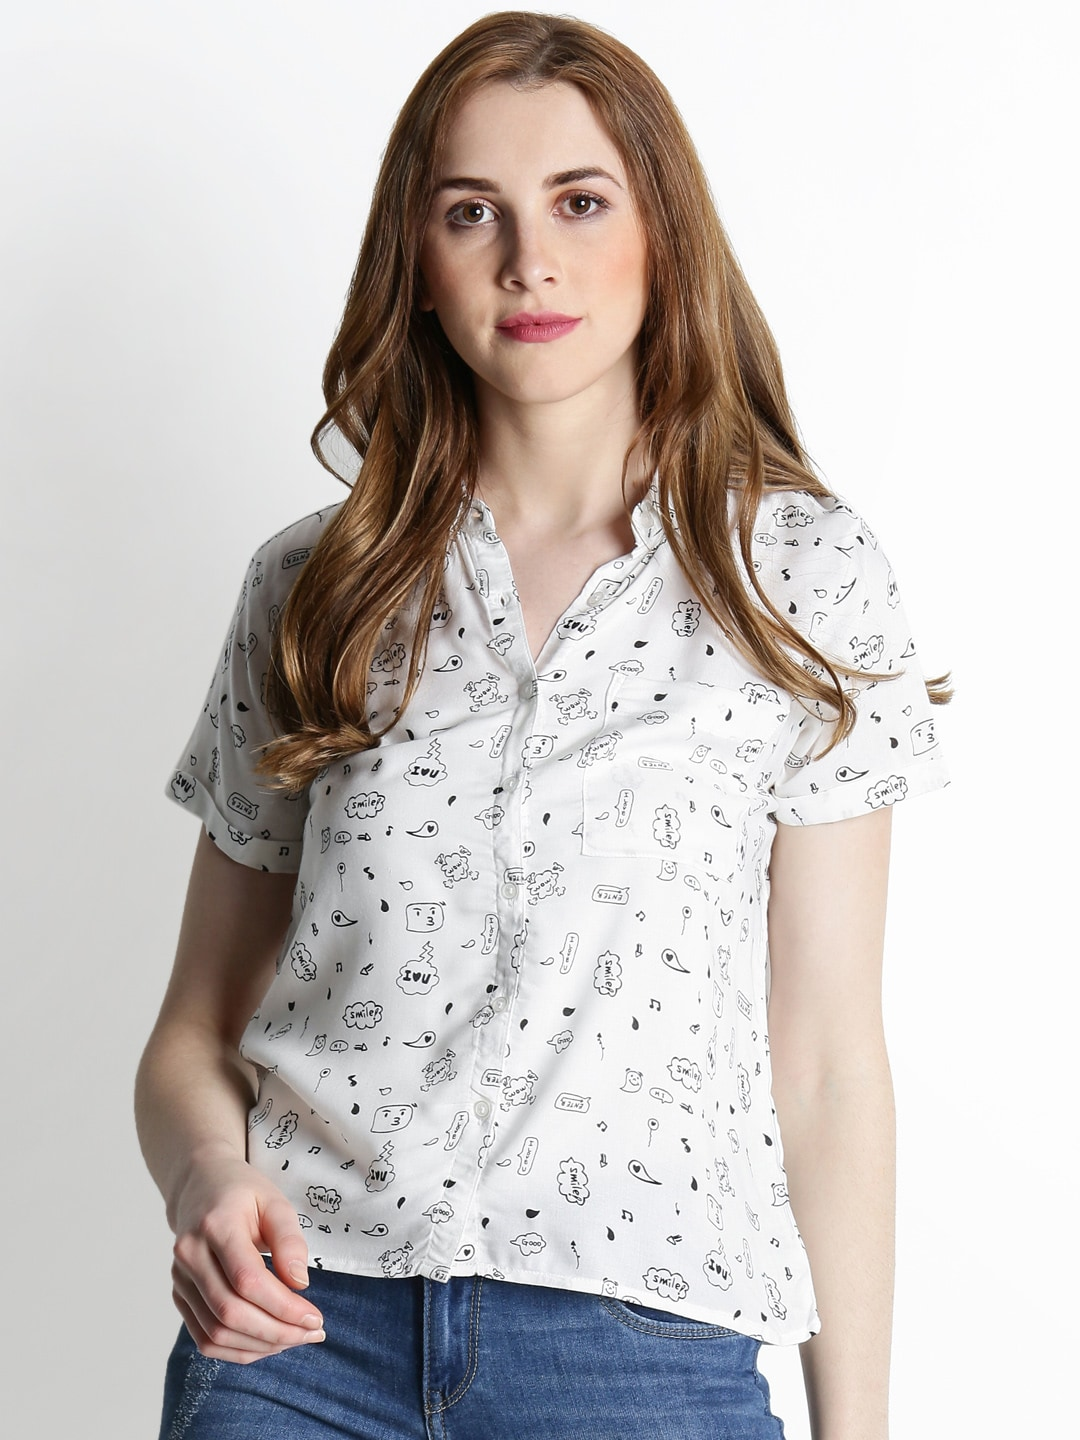 bd19f08163ac2c Honey By Pantaloons Shirts Patiala Tshirts - Buy Honey By Pantaloons Shirts  Patiala Tshirts online in India